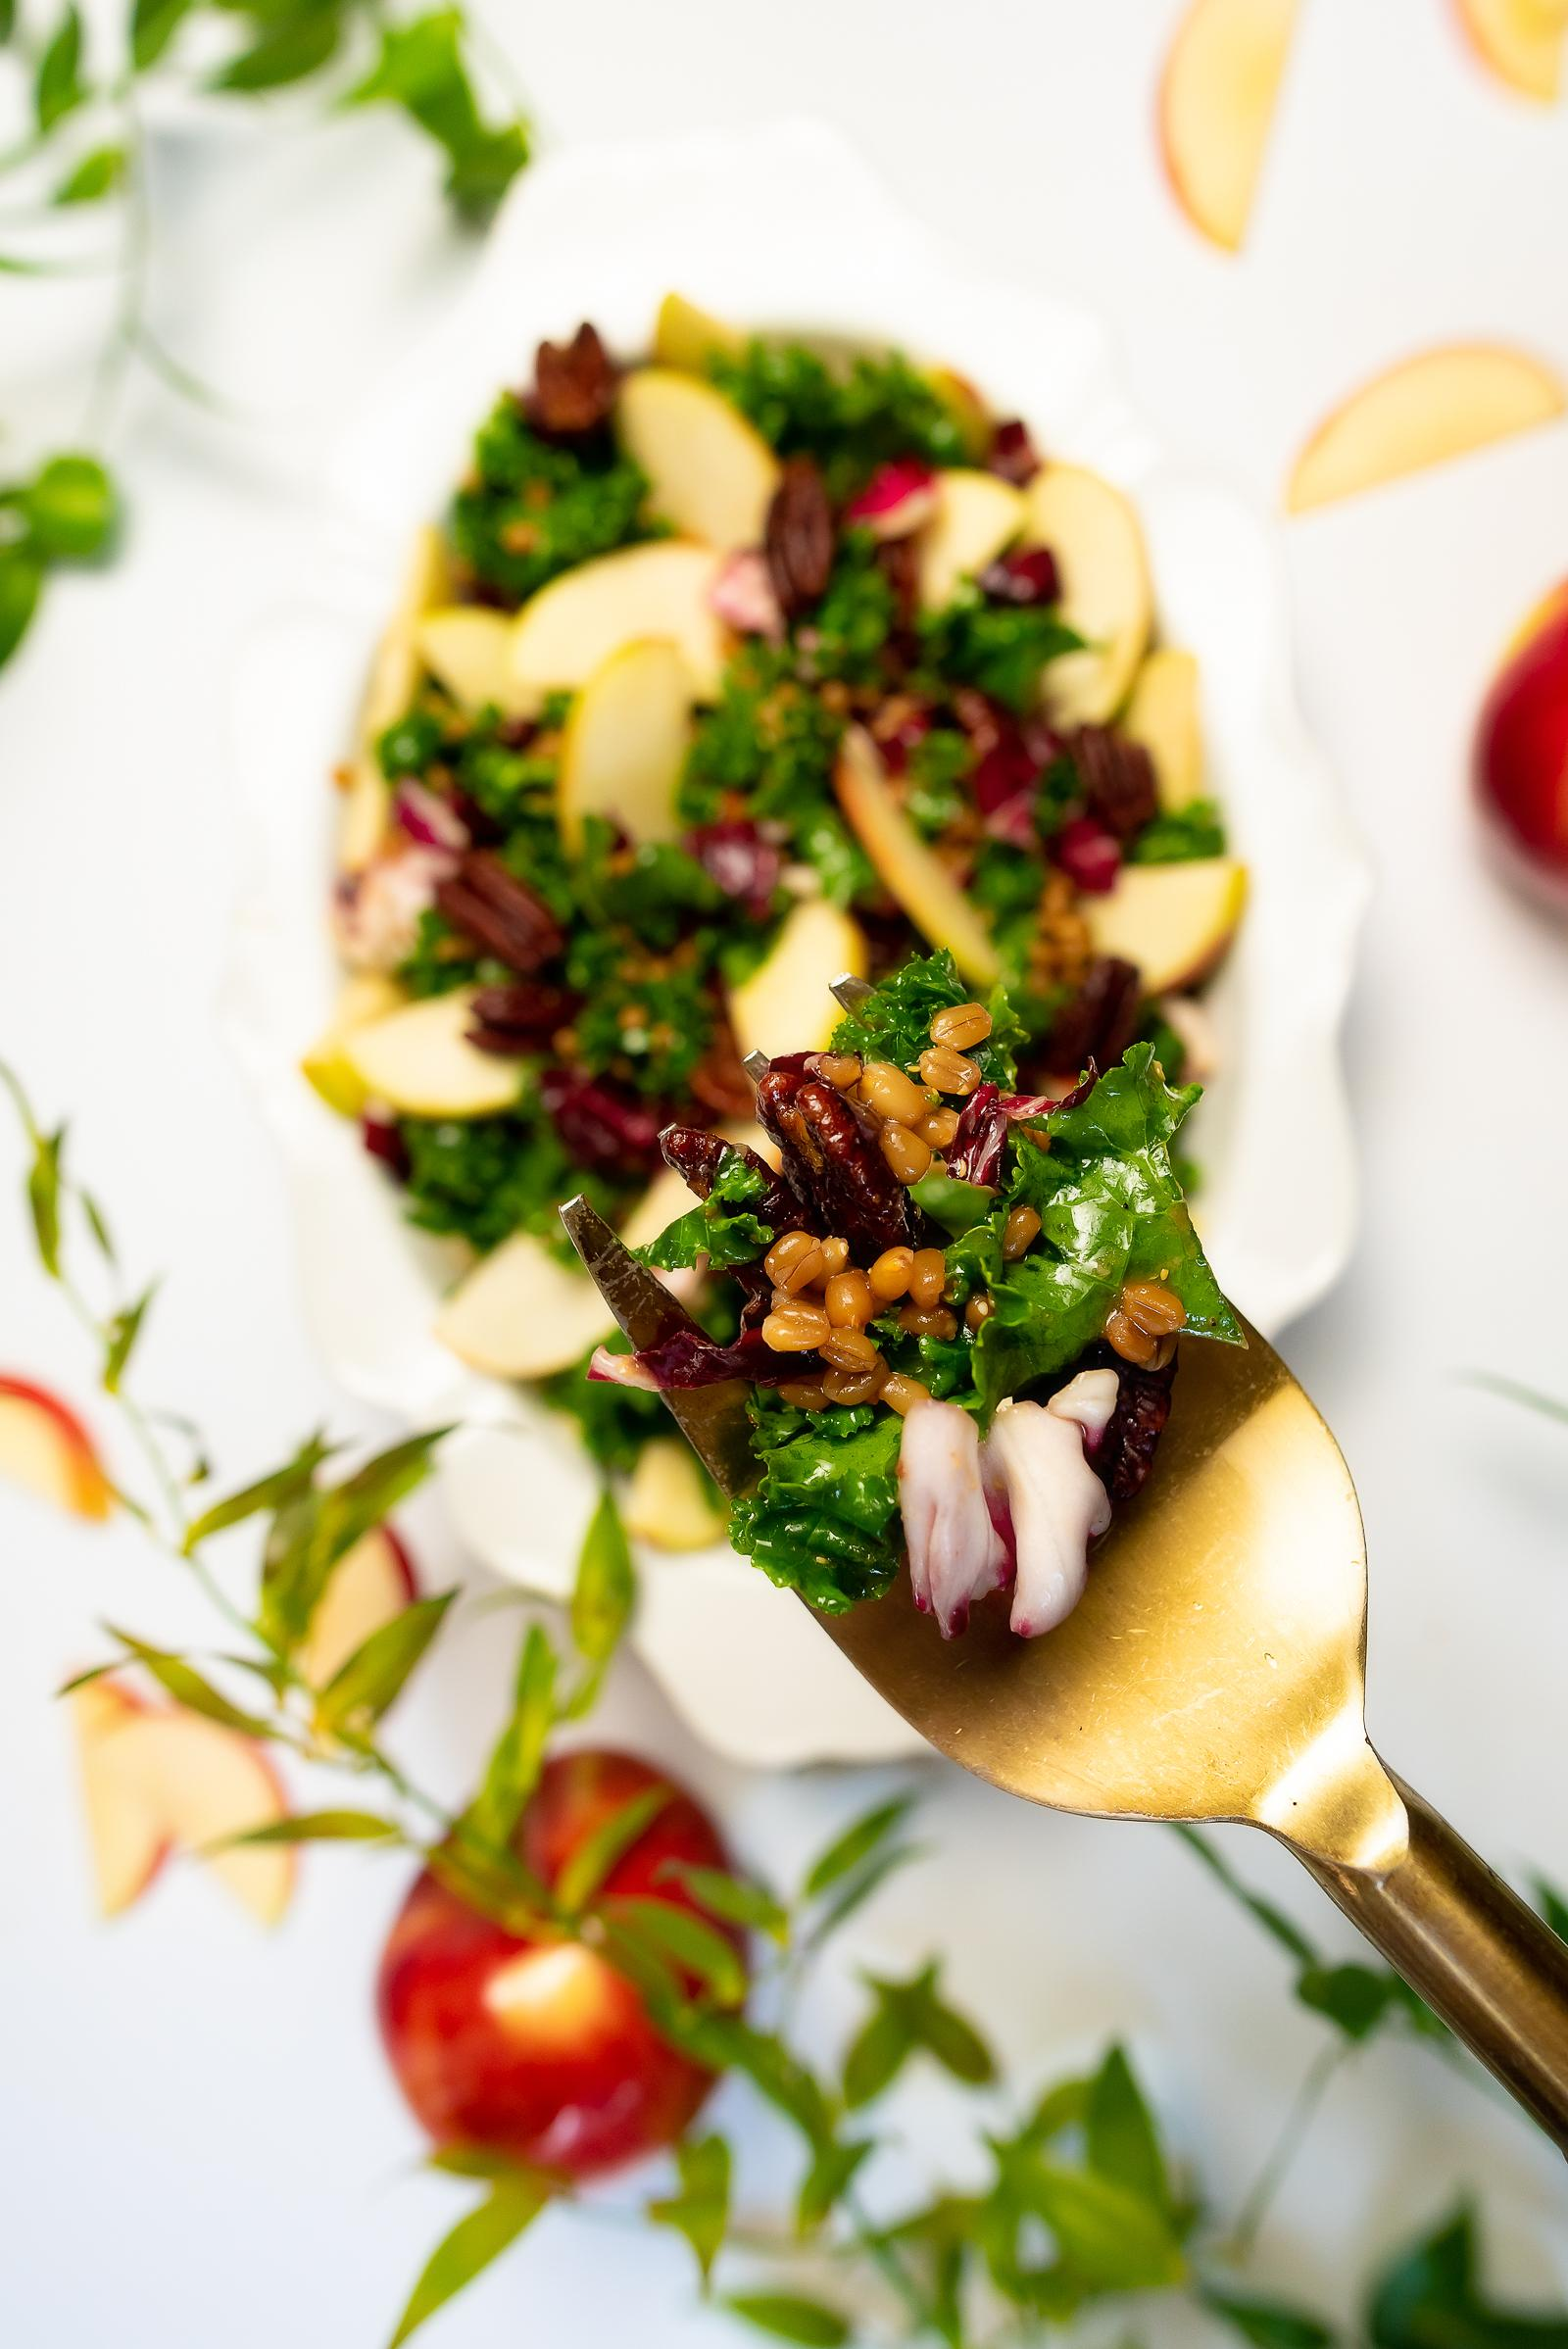 Stemilt Rave Apple Salad with Kale, Roasted Pecans, Wheatberries, Cabbage and an Apple Cider Mustard Vinaigrette Recope